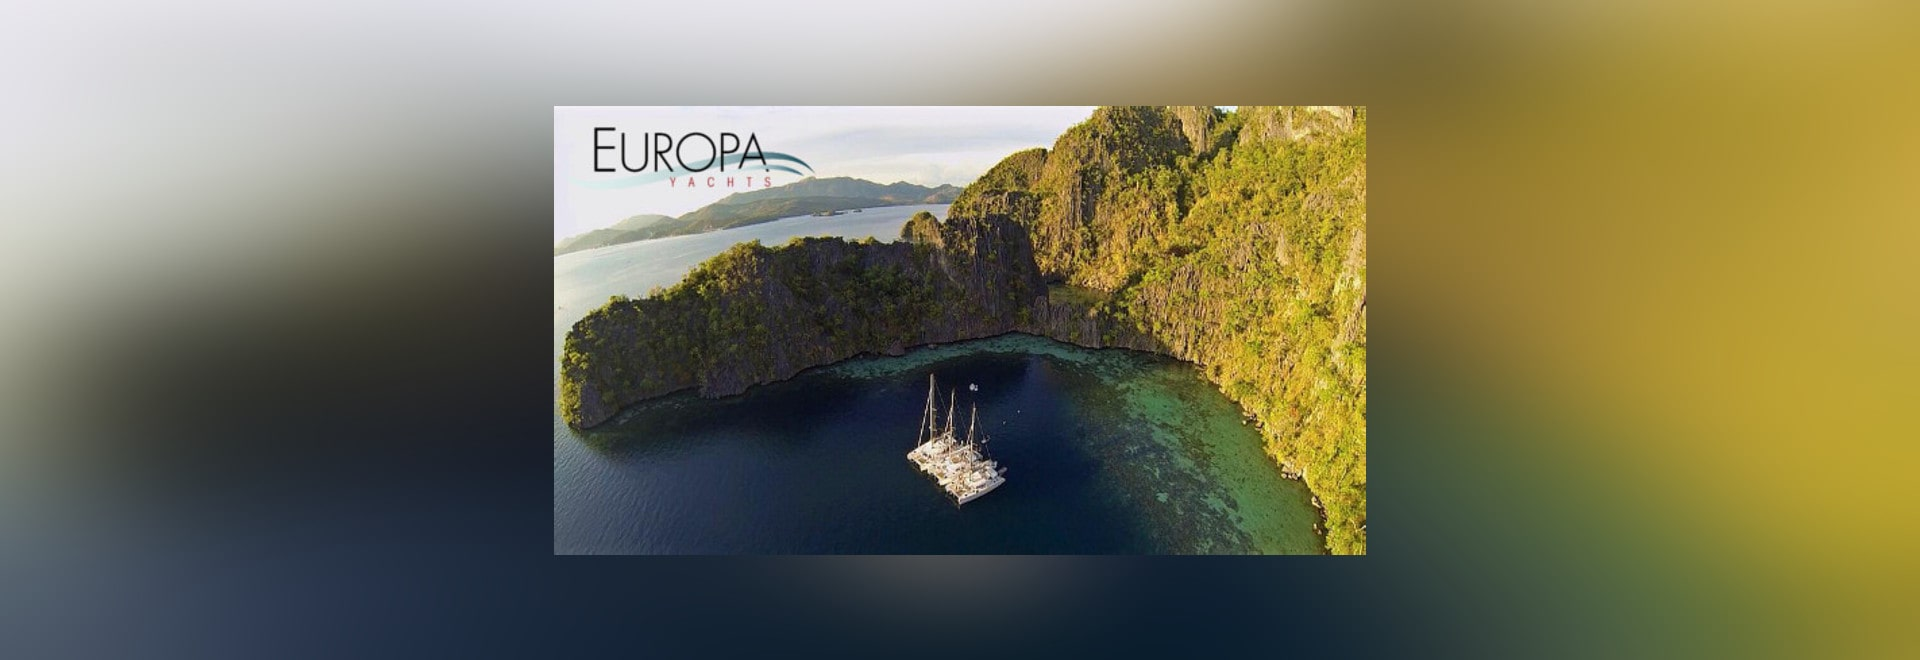 Sailing Paradise! Palawan, Philippines voted top island destination